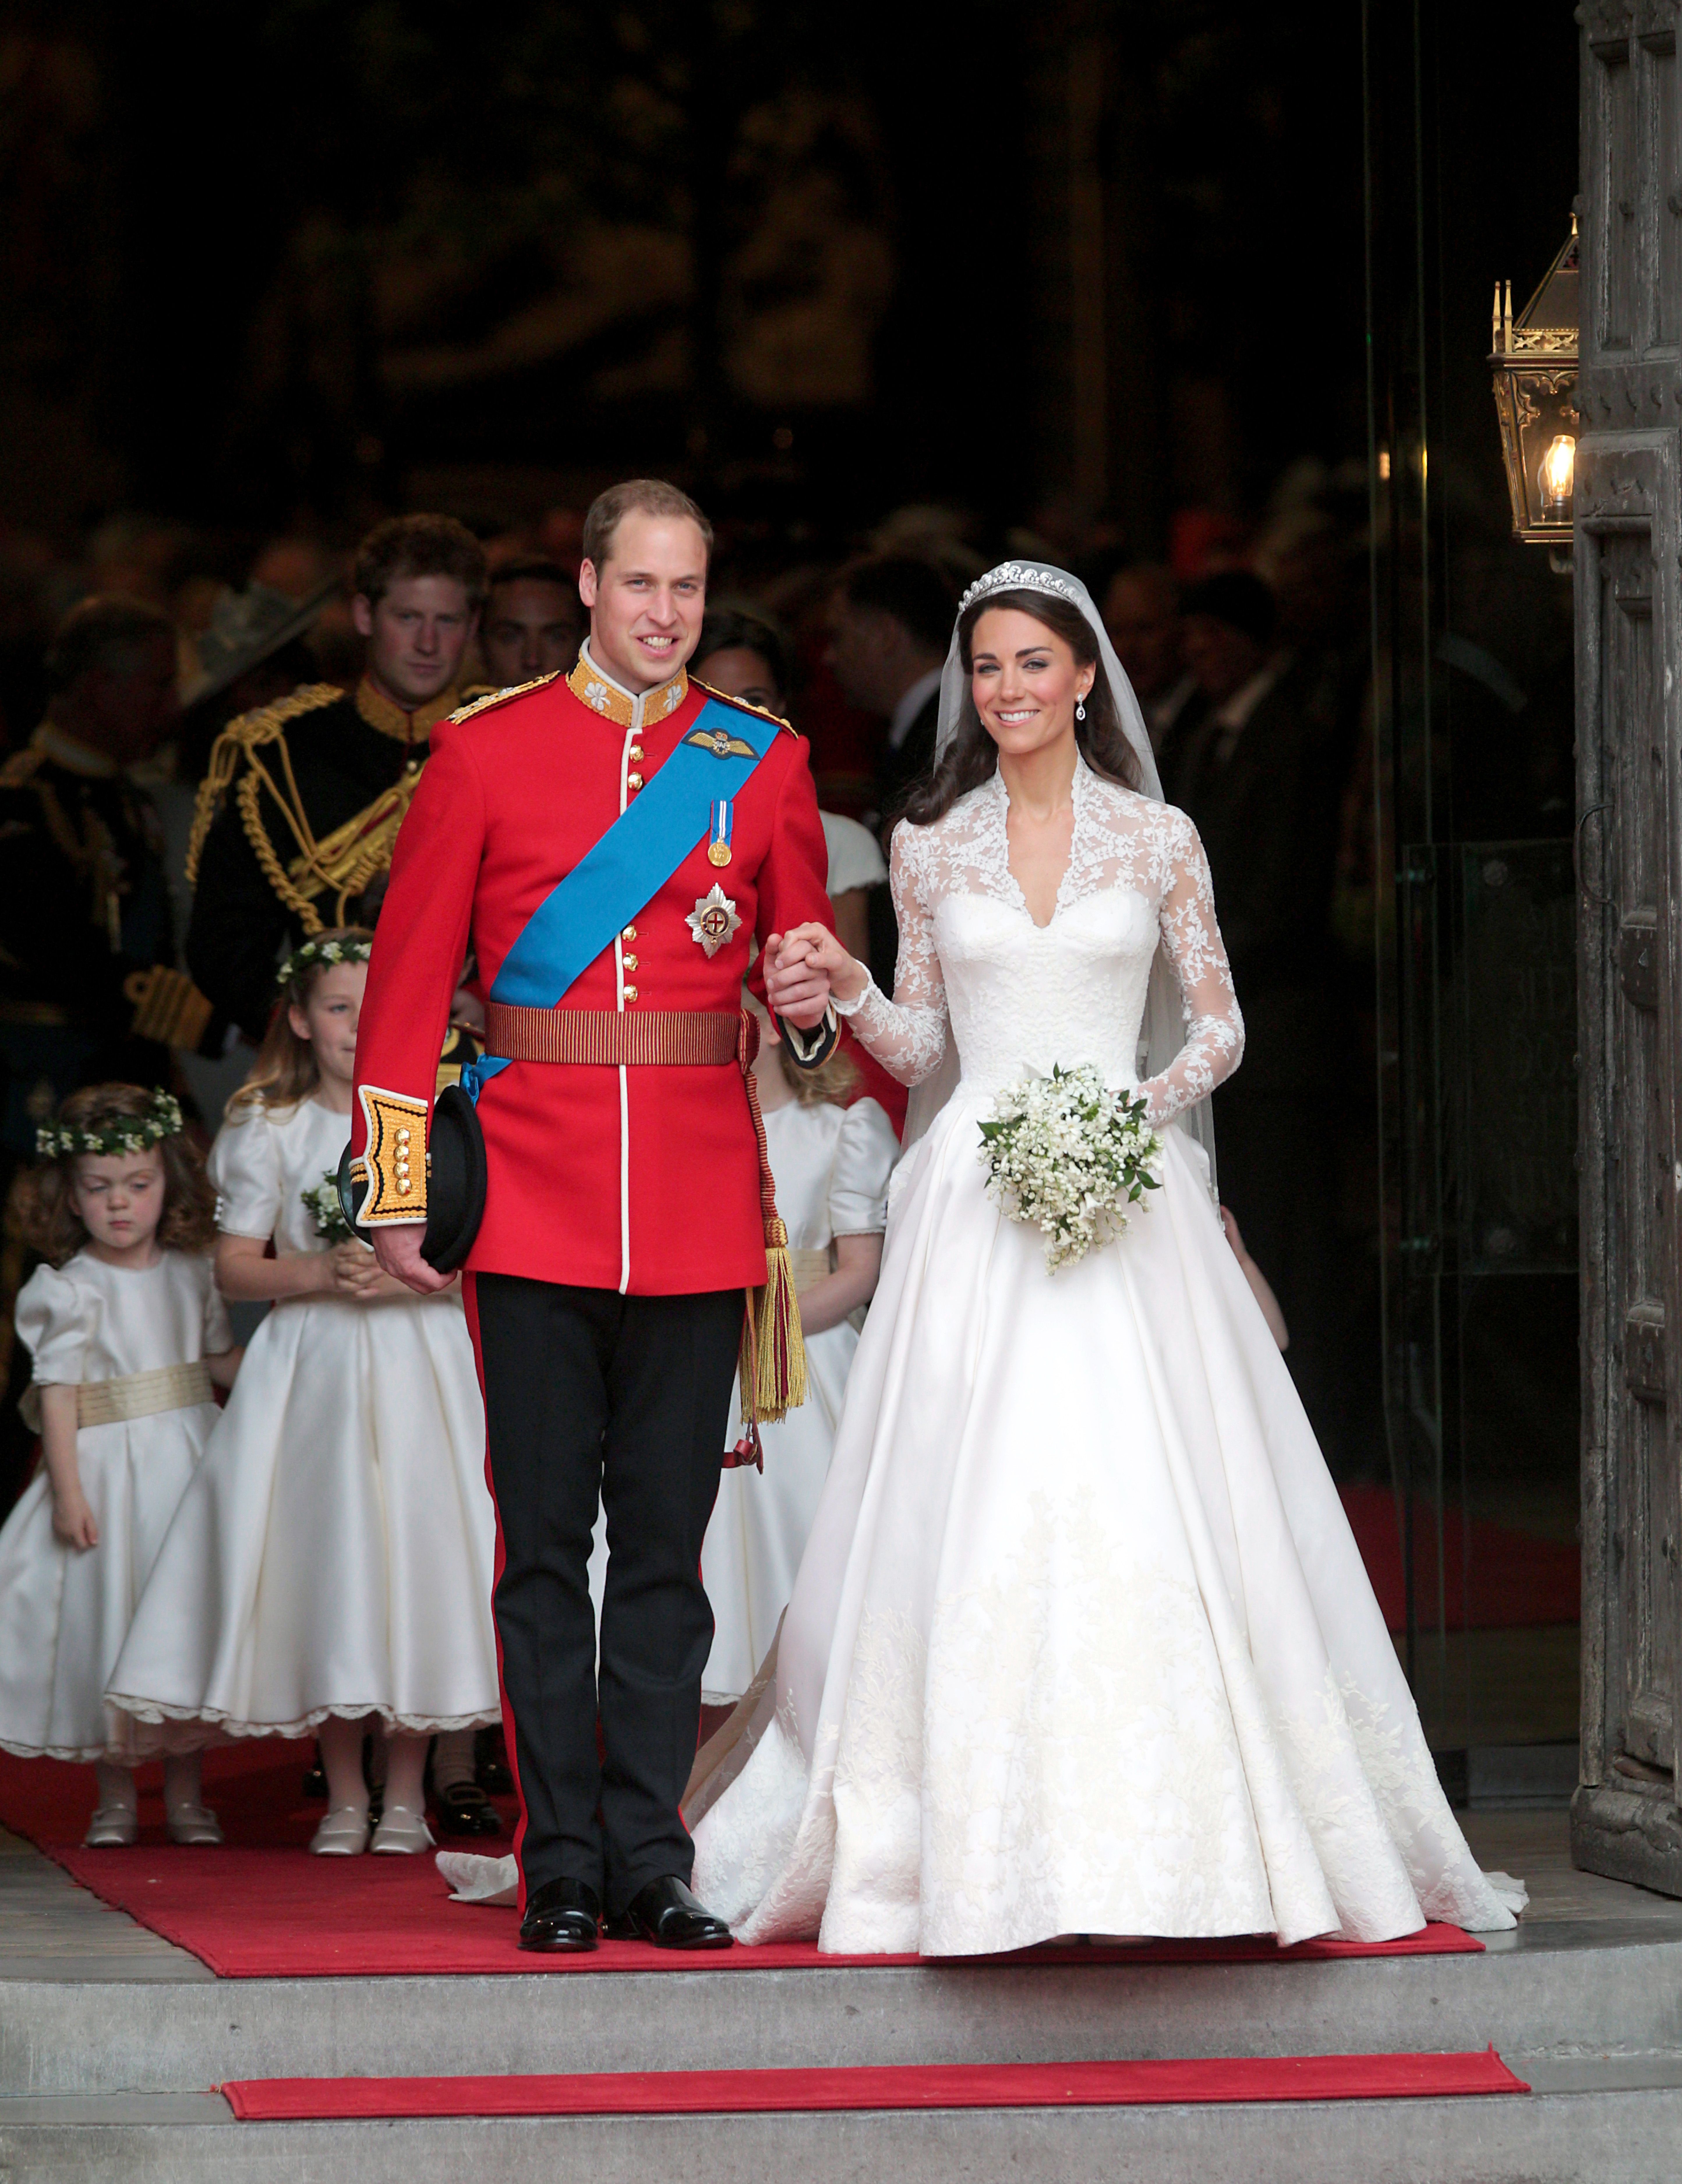 Prince William and his wife Kate Middleton emerge from Westminster Abbey after the wedding ceremony on  April 29, 2011 | Photo: Getty Images